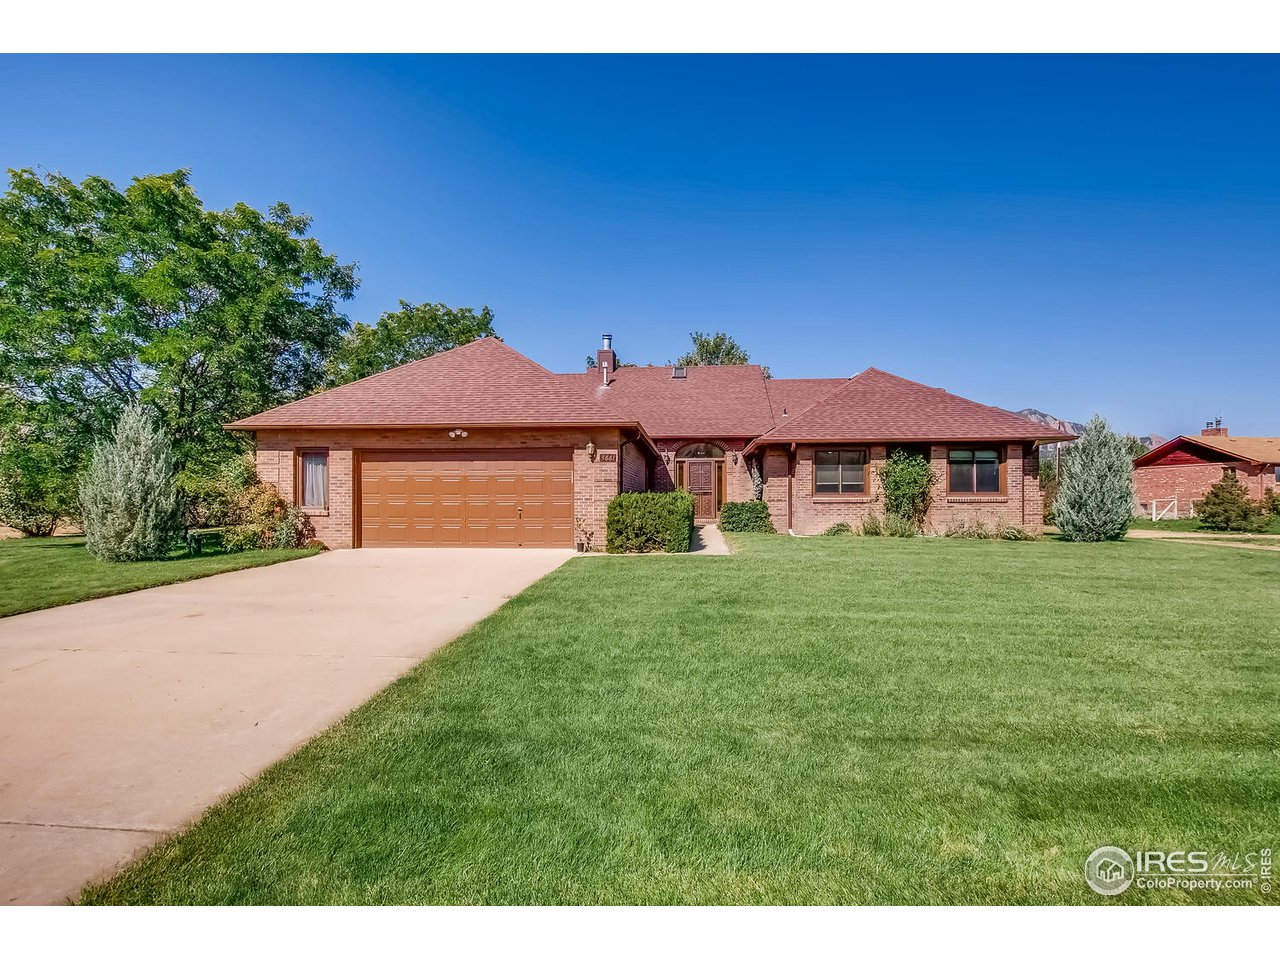 4661 Eldorado Springs Dr, Boulder CO 80303